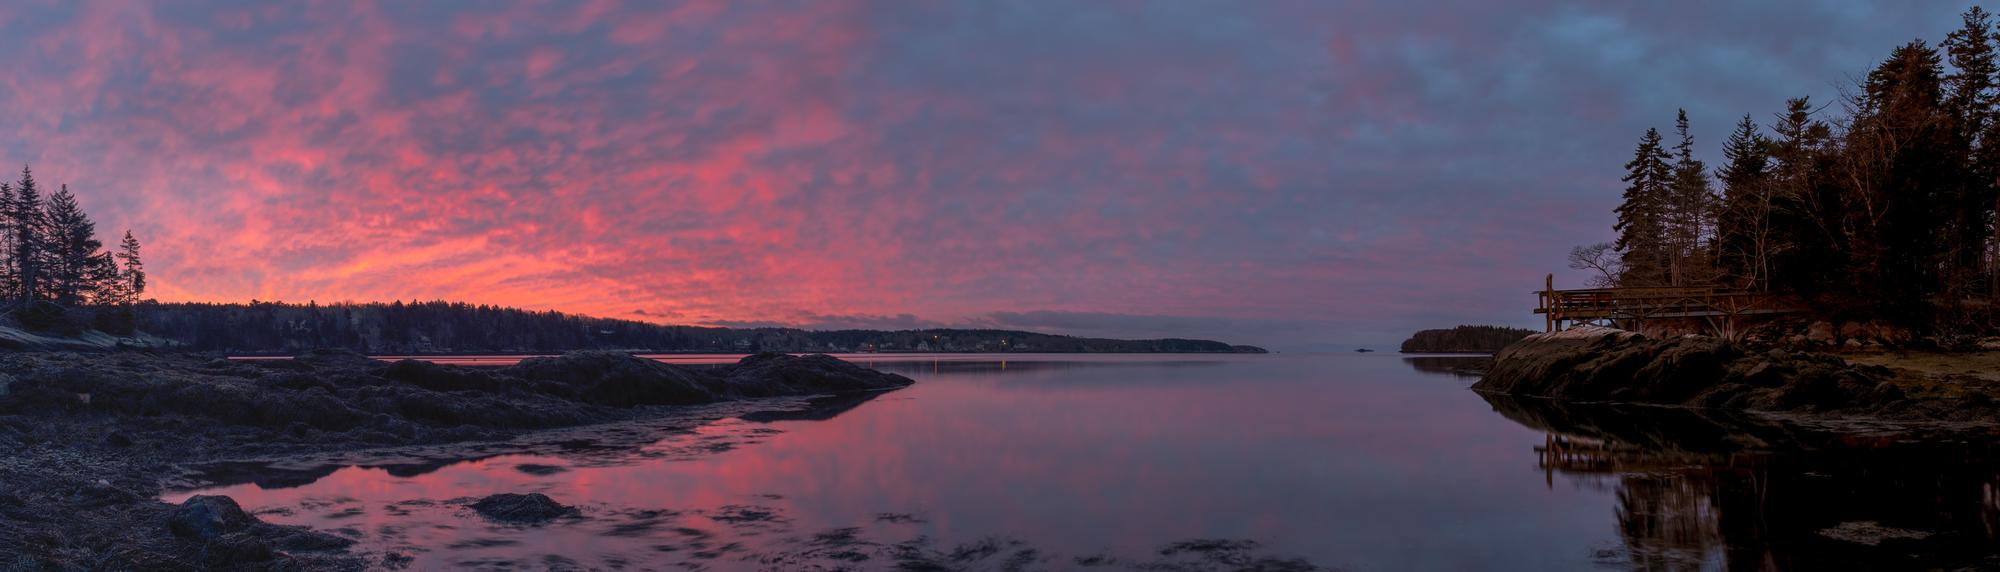 Sunrise over a midcoast Maine river inlet